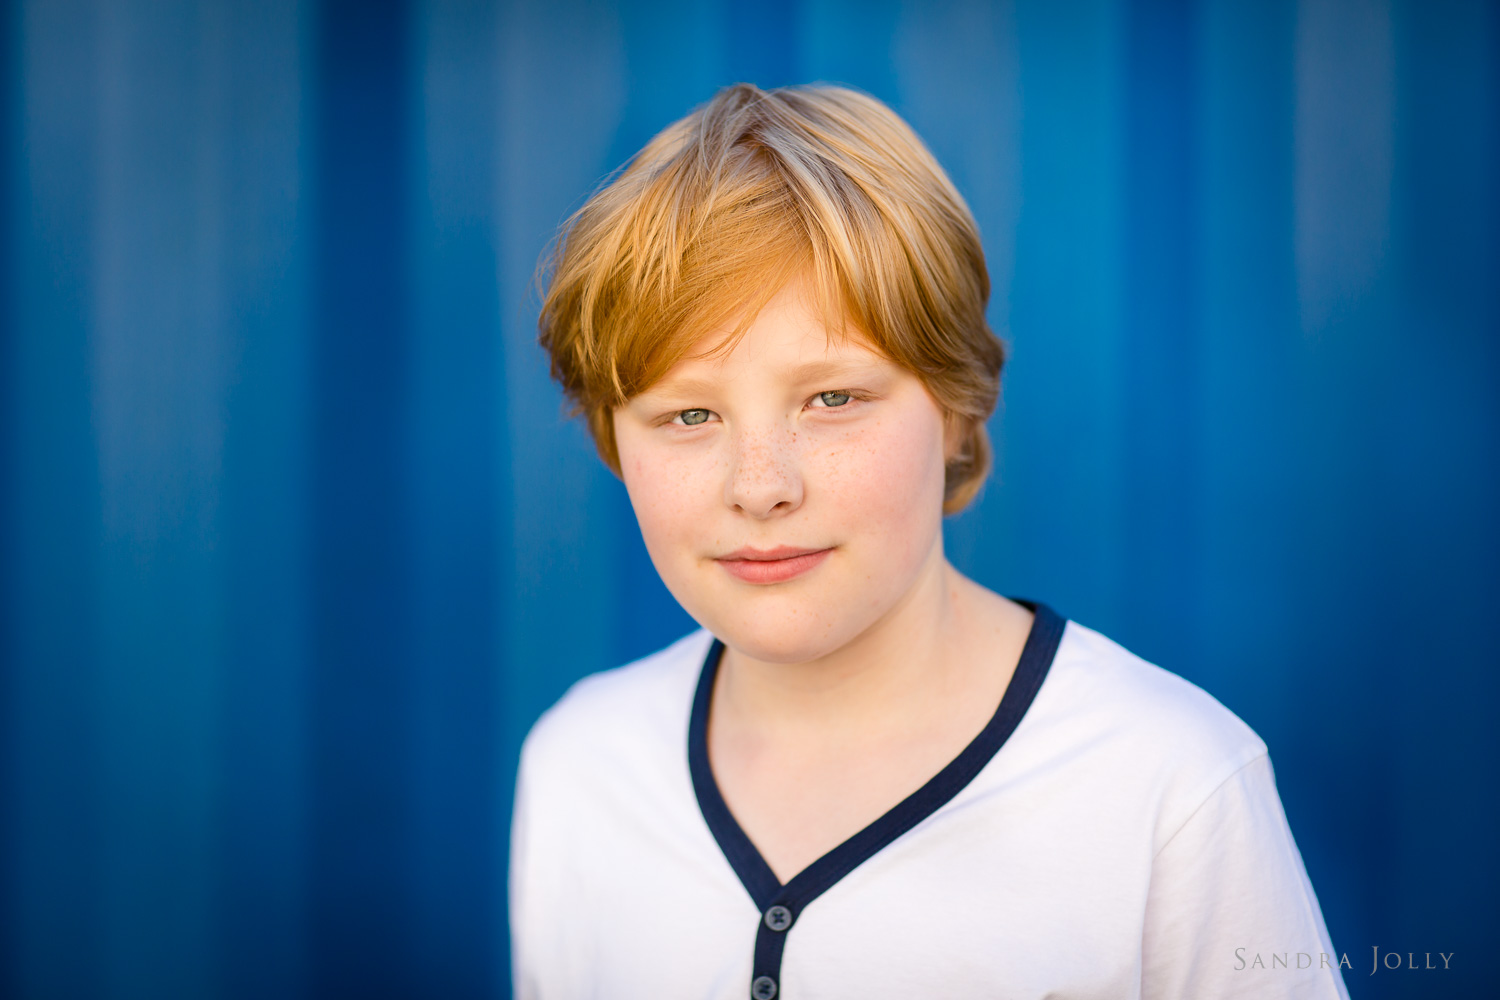 teenage-boy-photo-sessiong-at-Rosersbergs-Slott.jpg